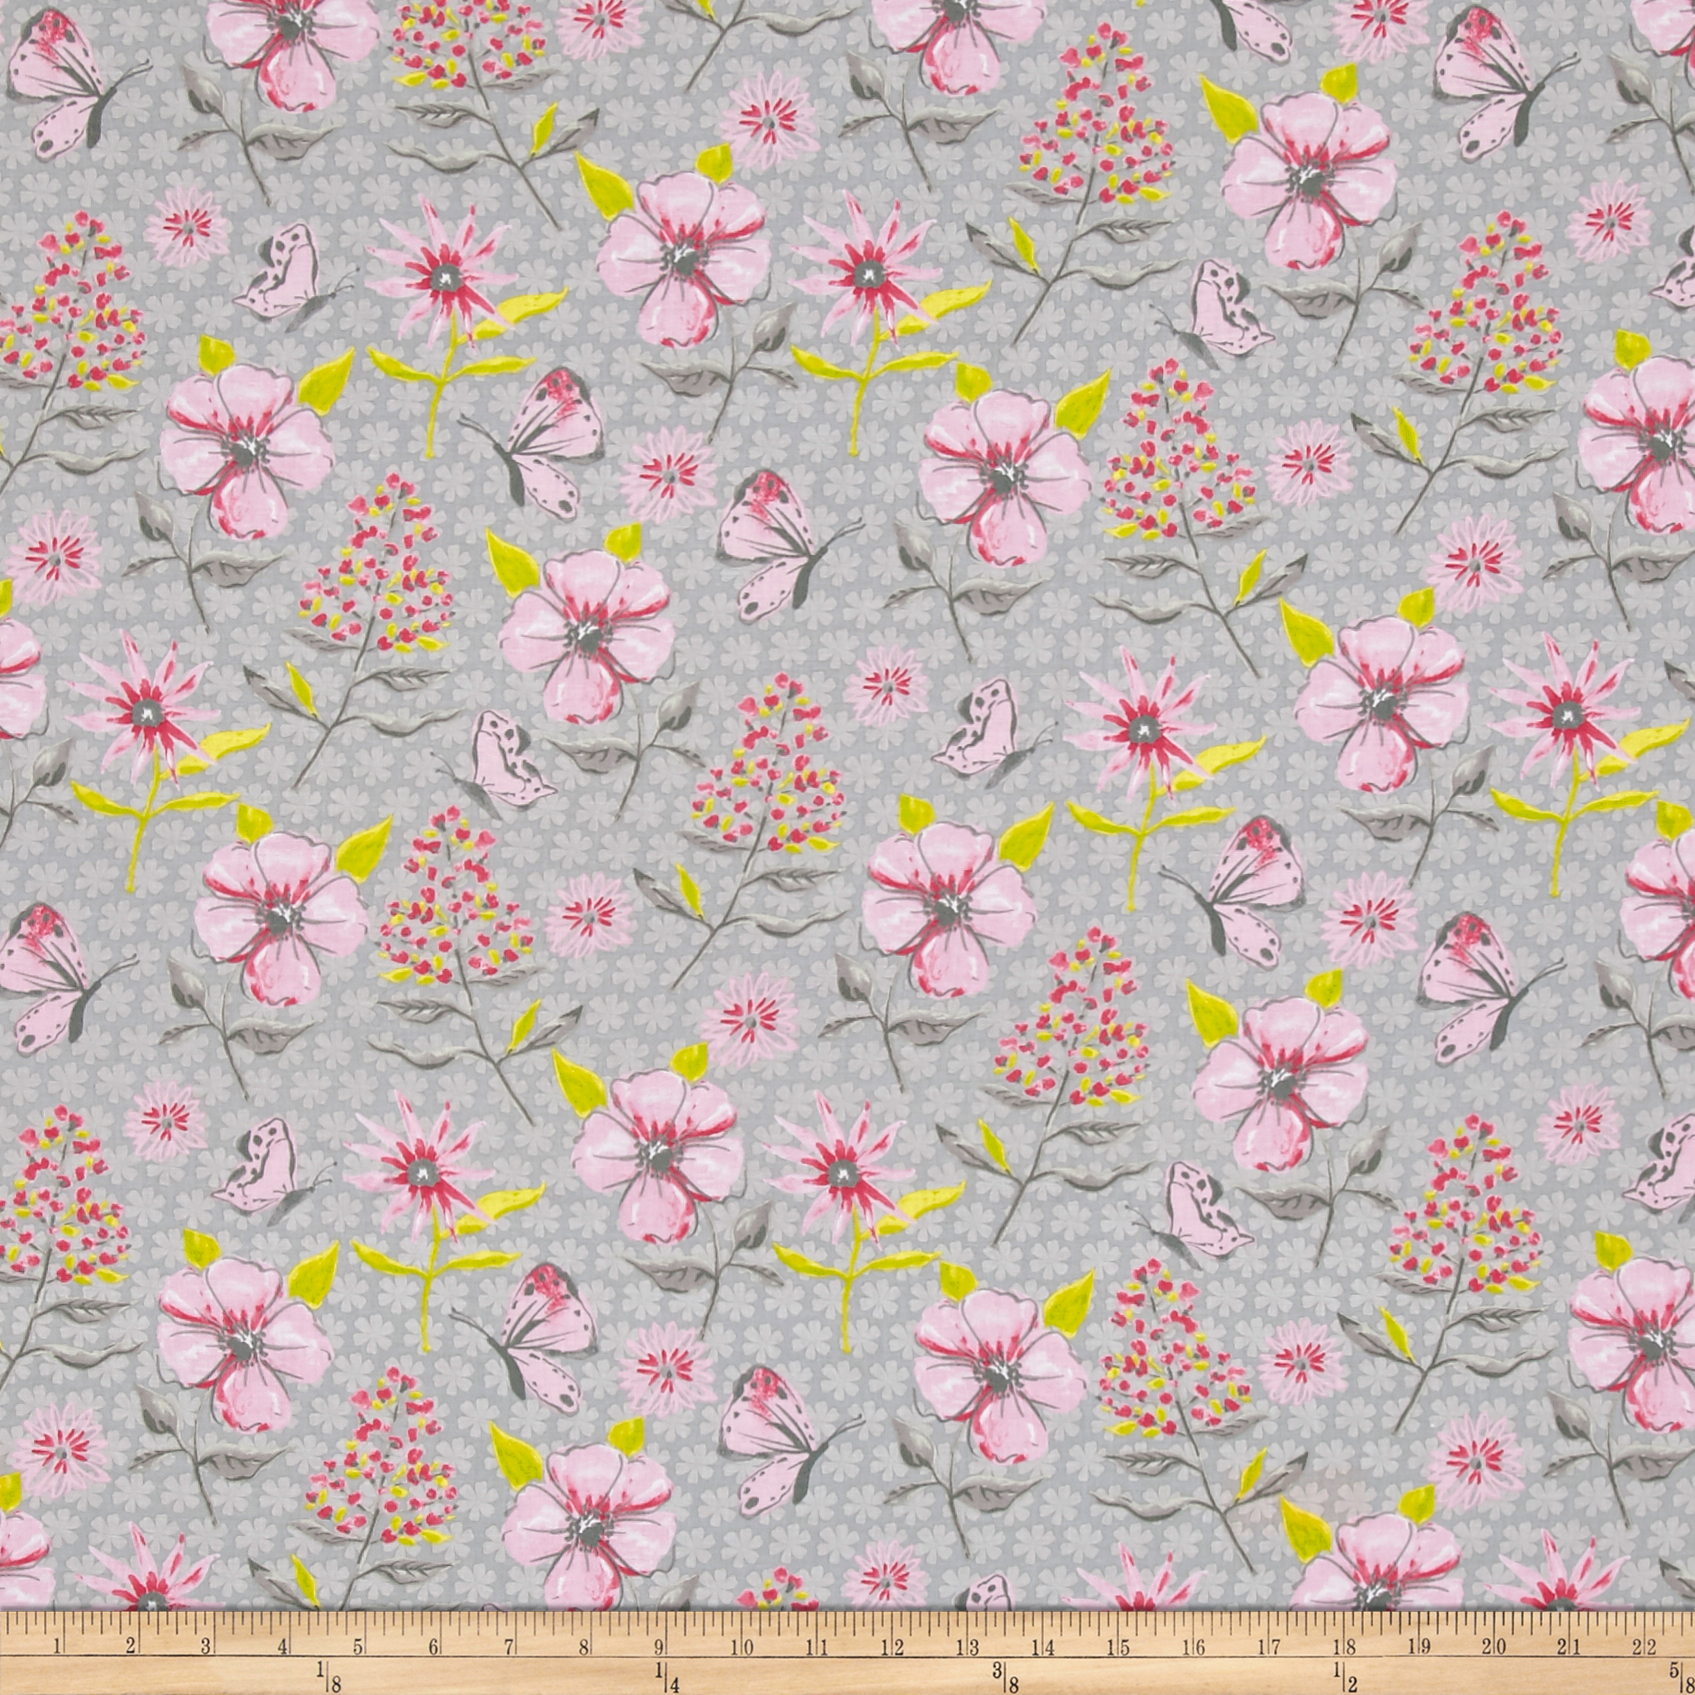 Flutter Floral Grey Fabric by Clothworks in USA